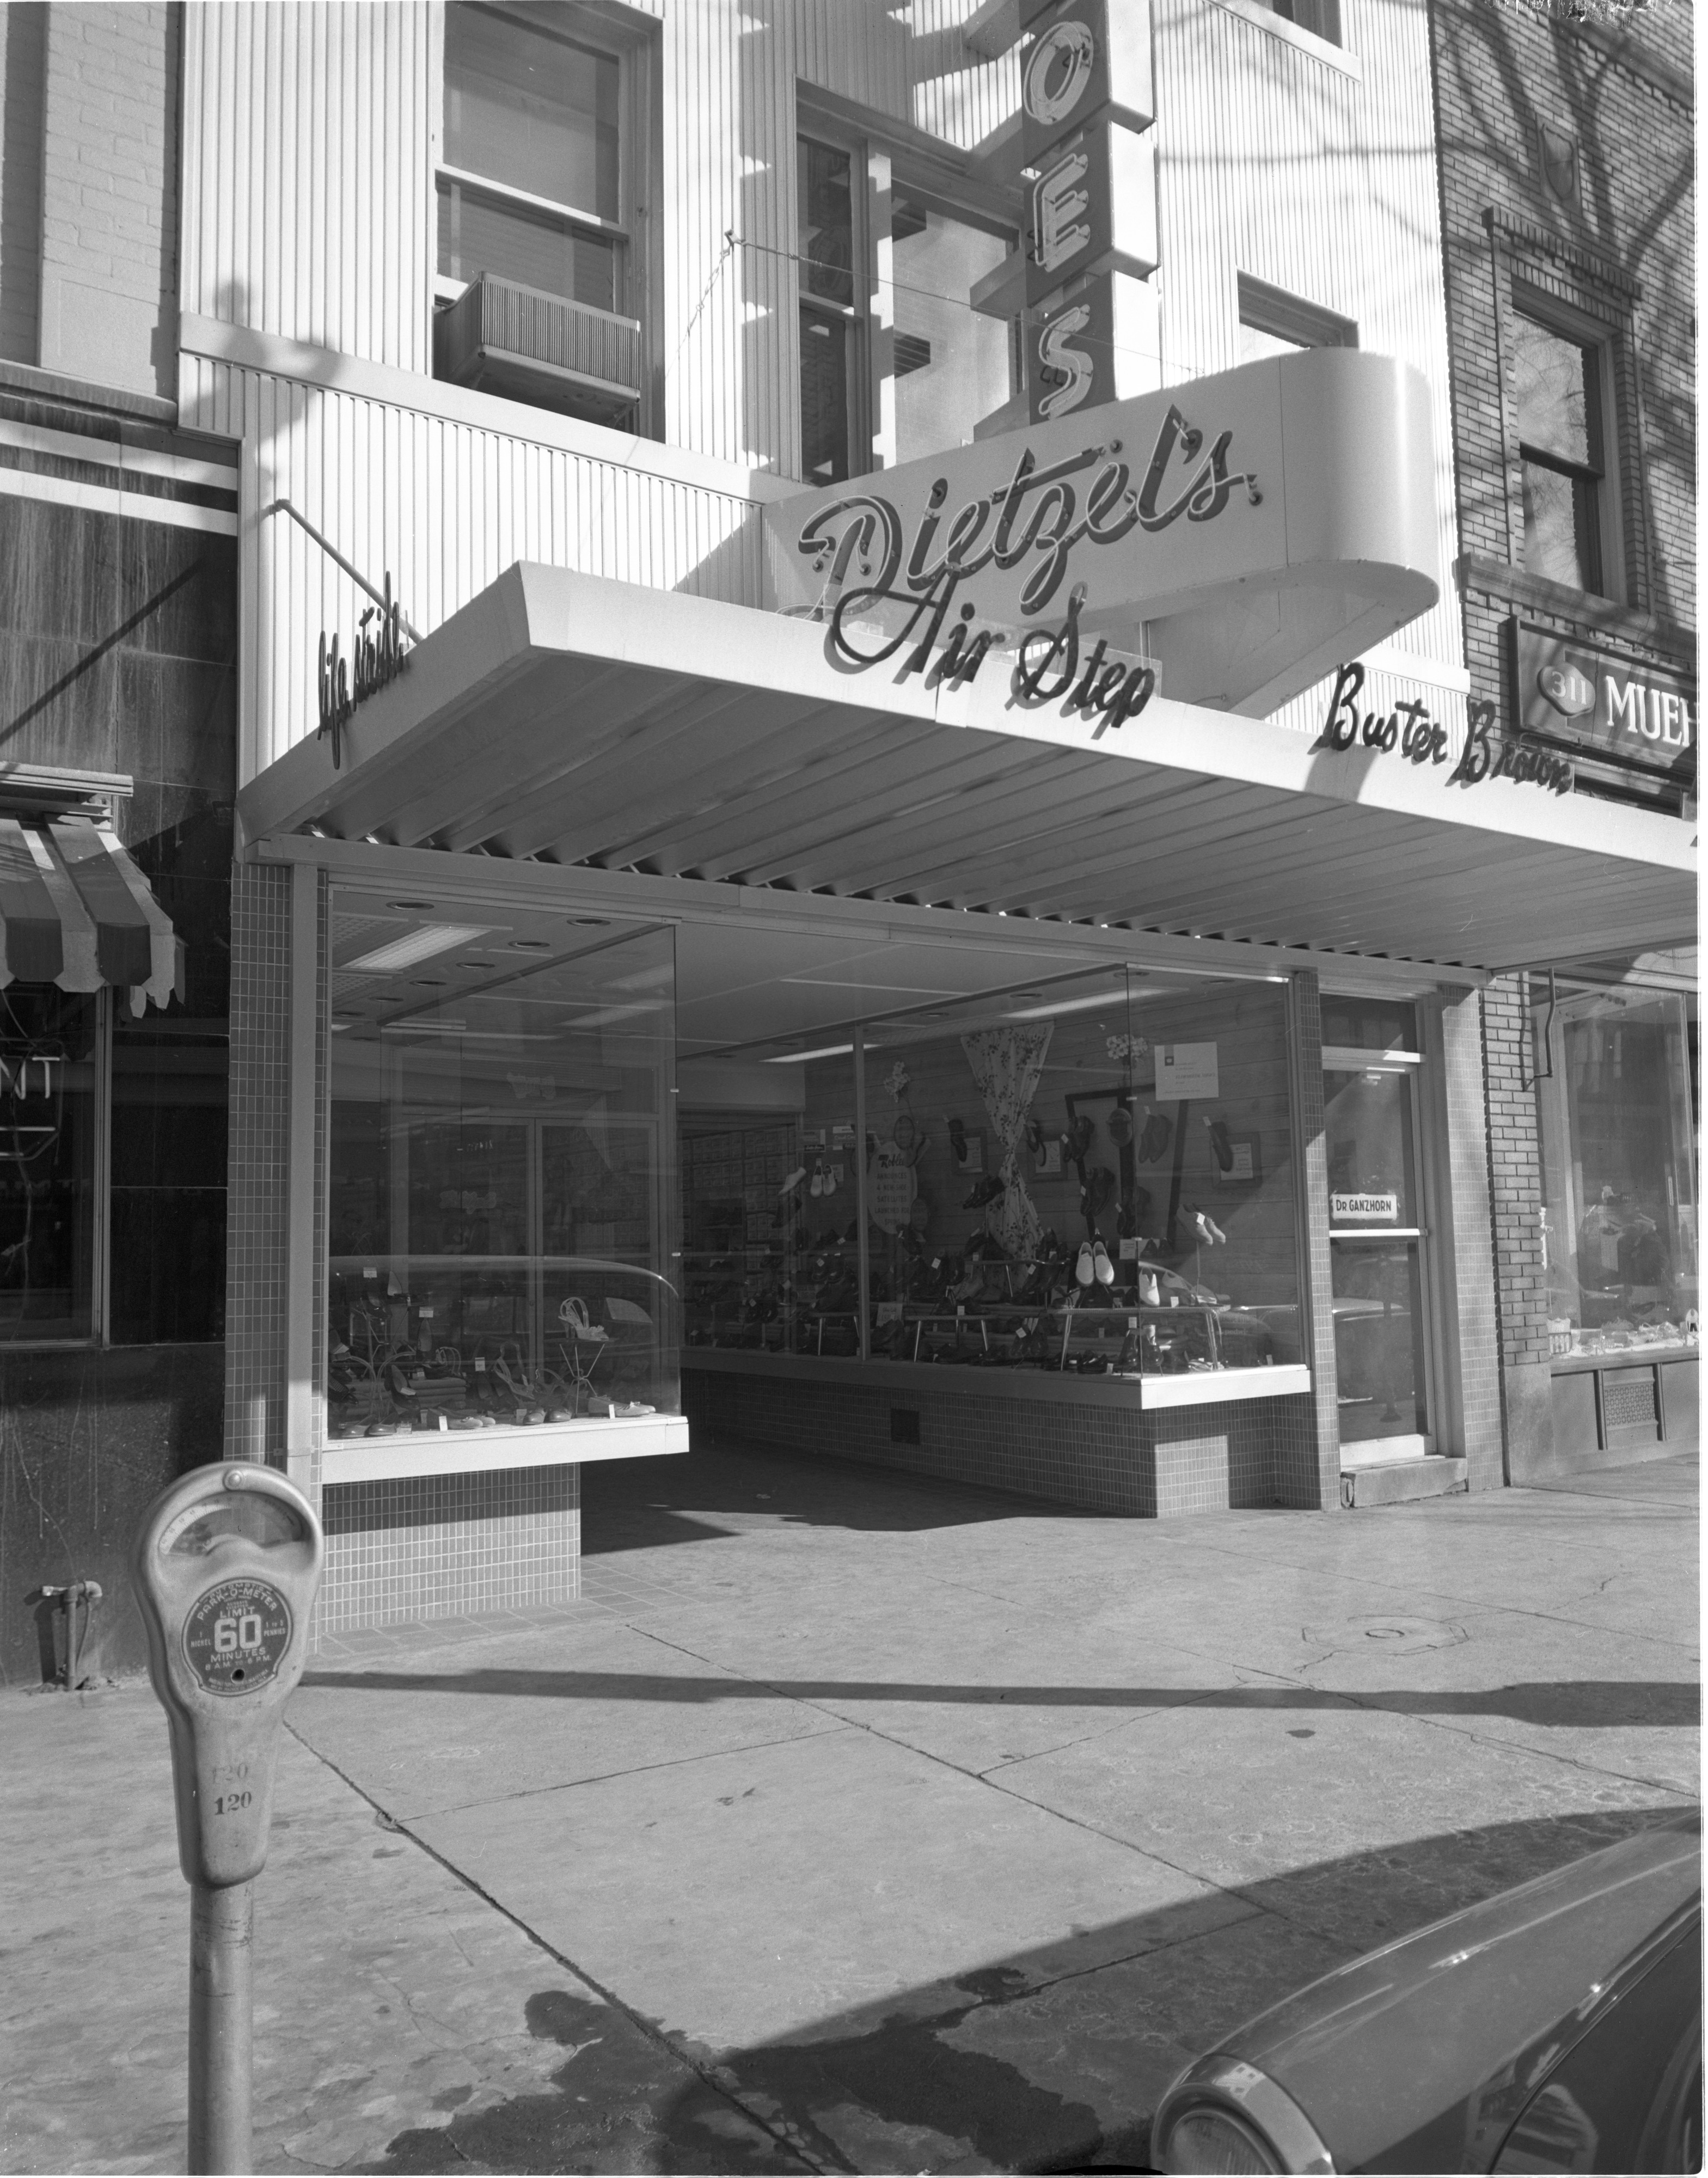 Exterior Of Dietzel's Shoe Store, March 1958 image